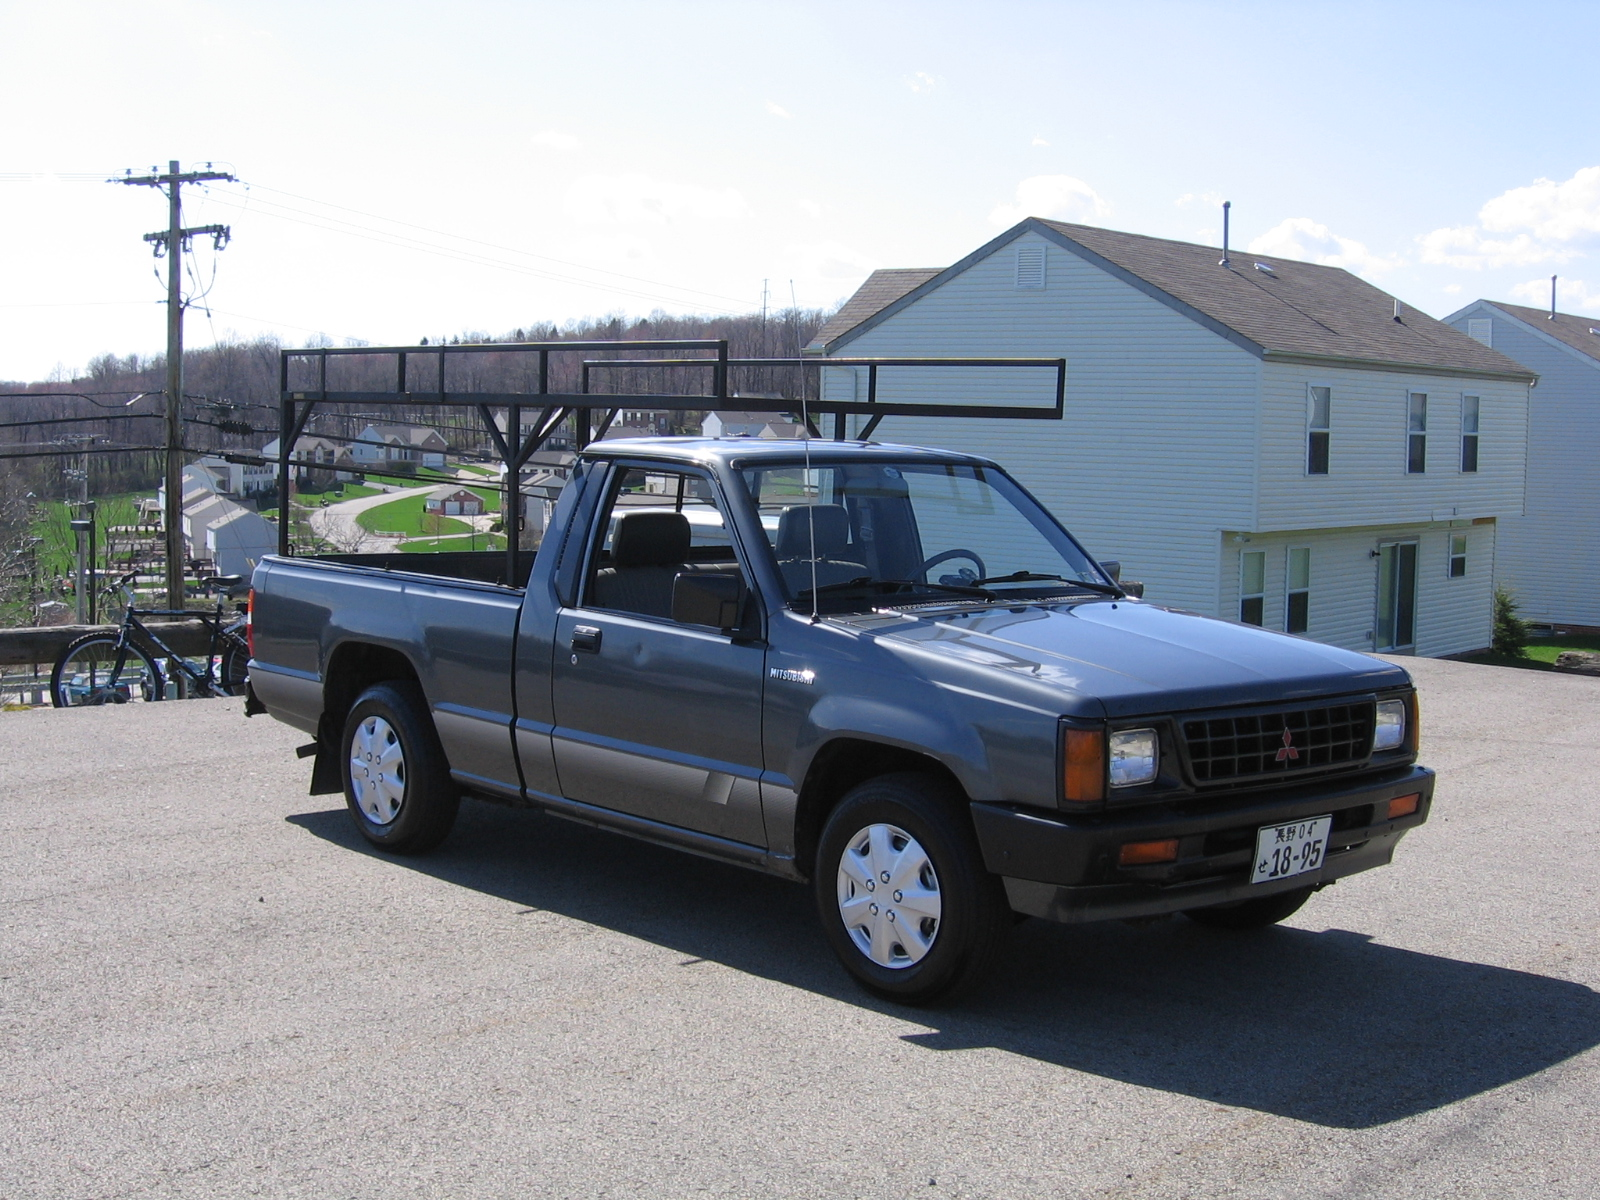 A Classic Mitsubishi Mighty Max Pickup Truck For Both